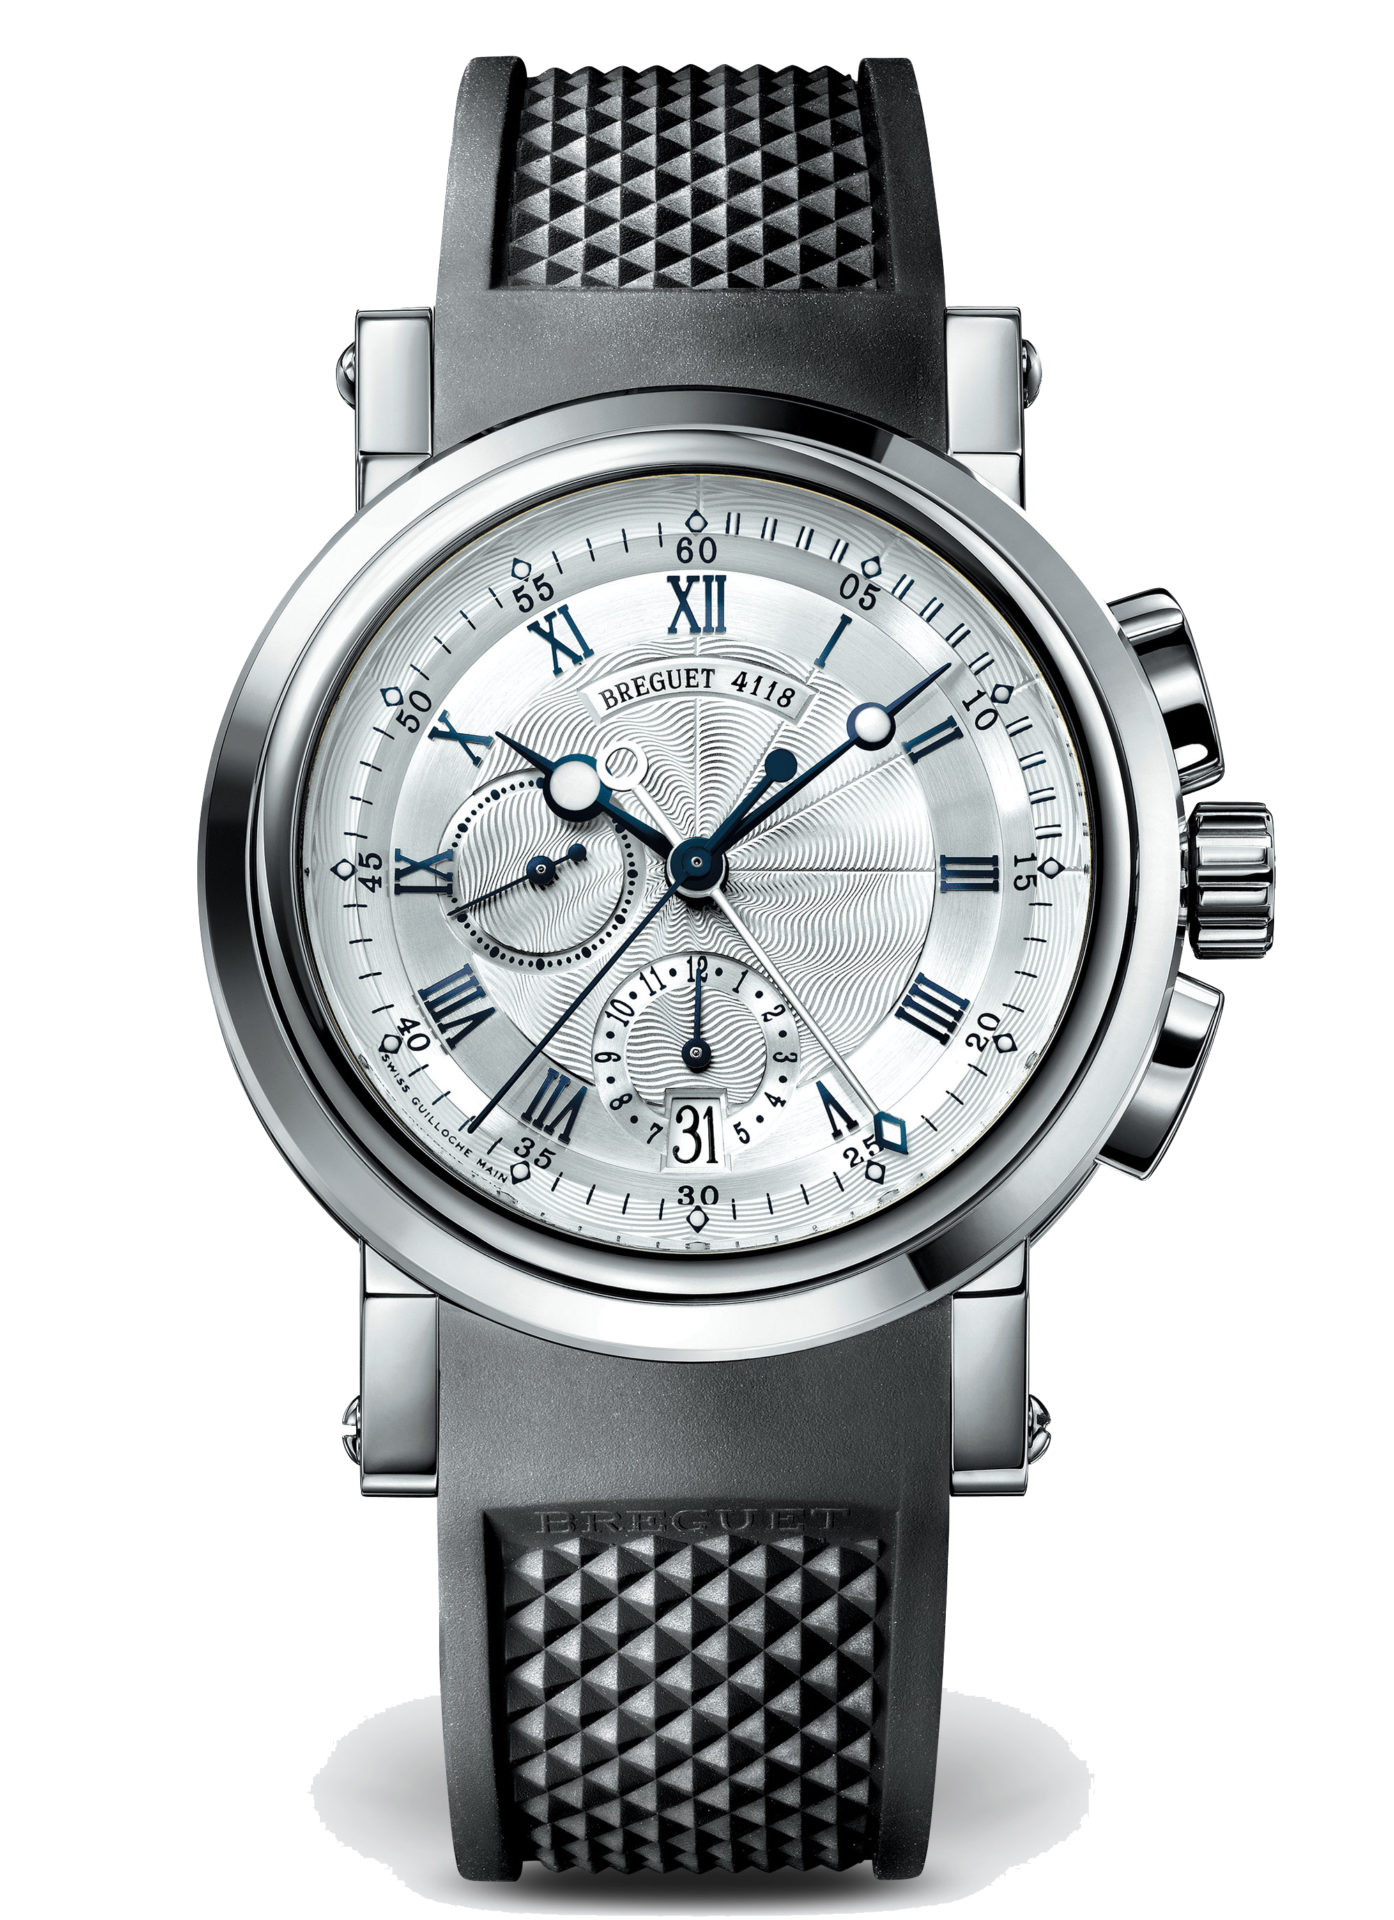 Breguet-La-Marine-5827-Hall-of-Time-5827bb-12-5zu